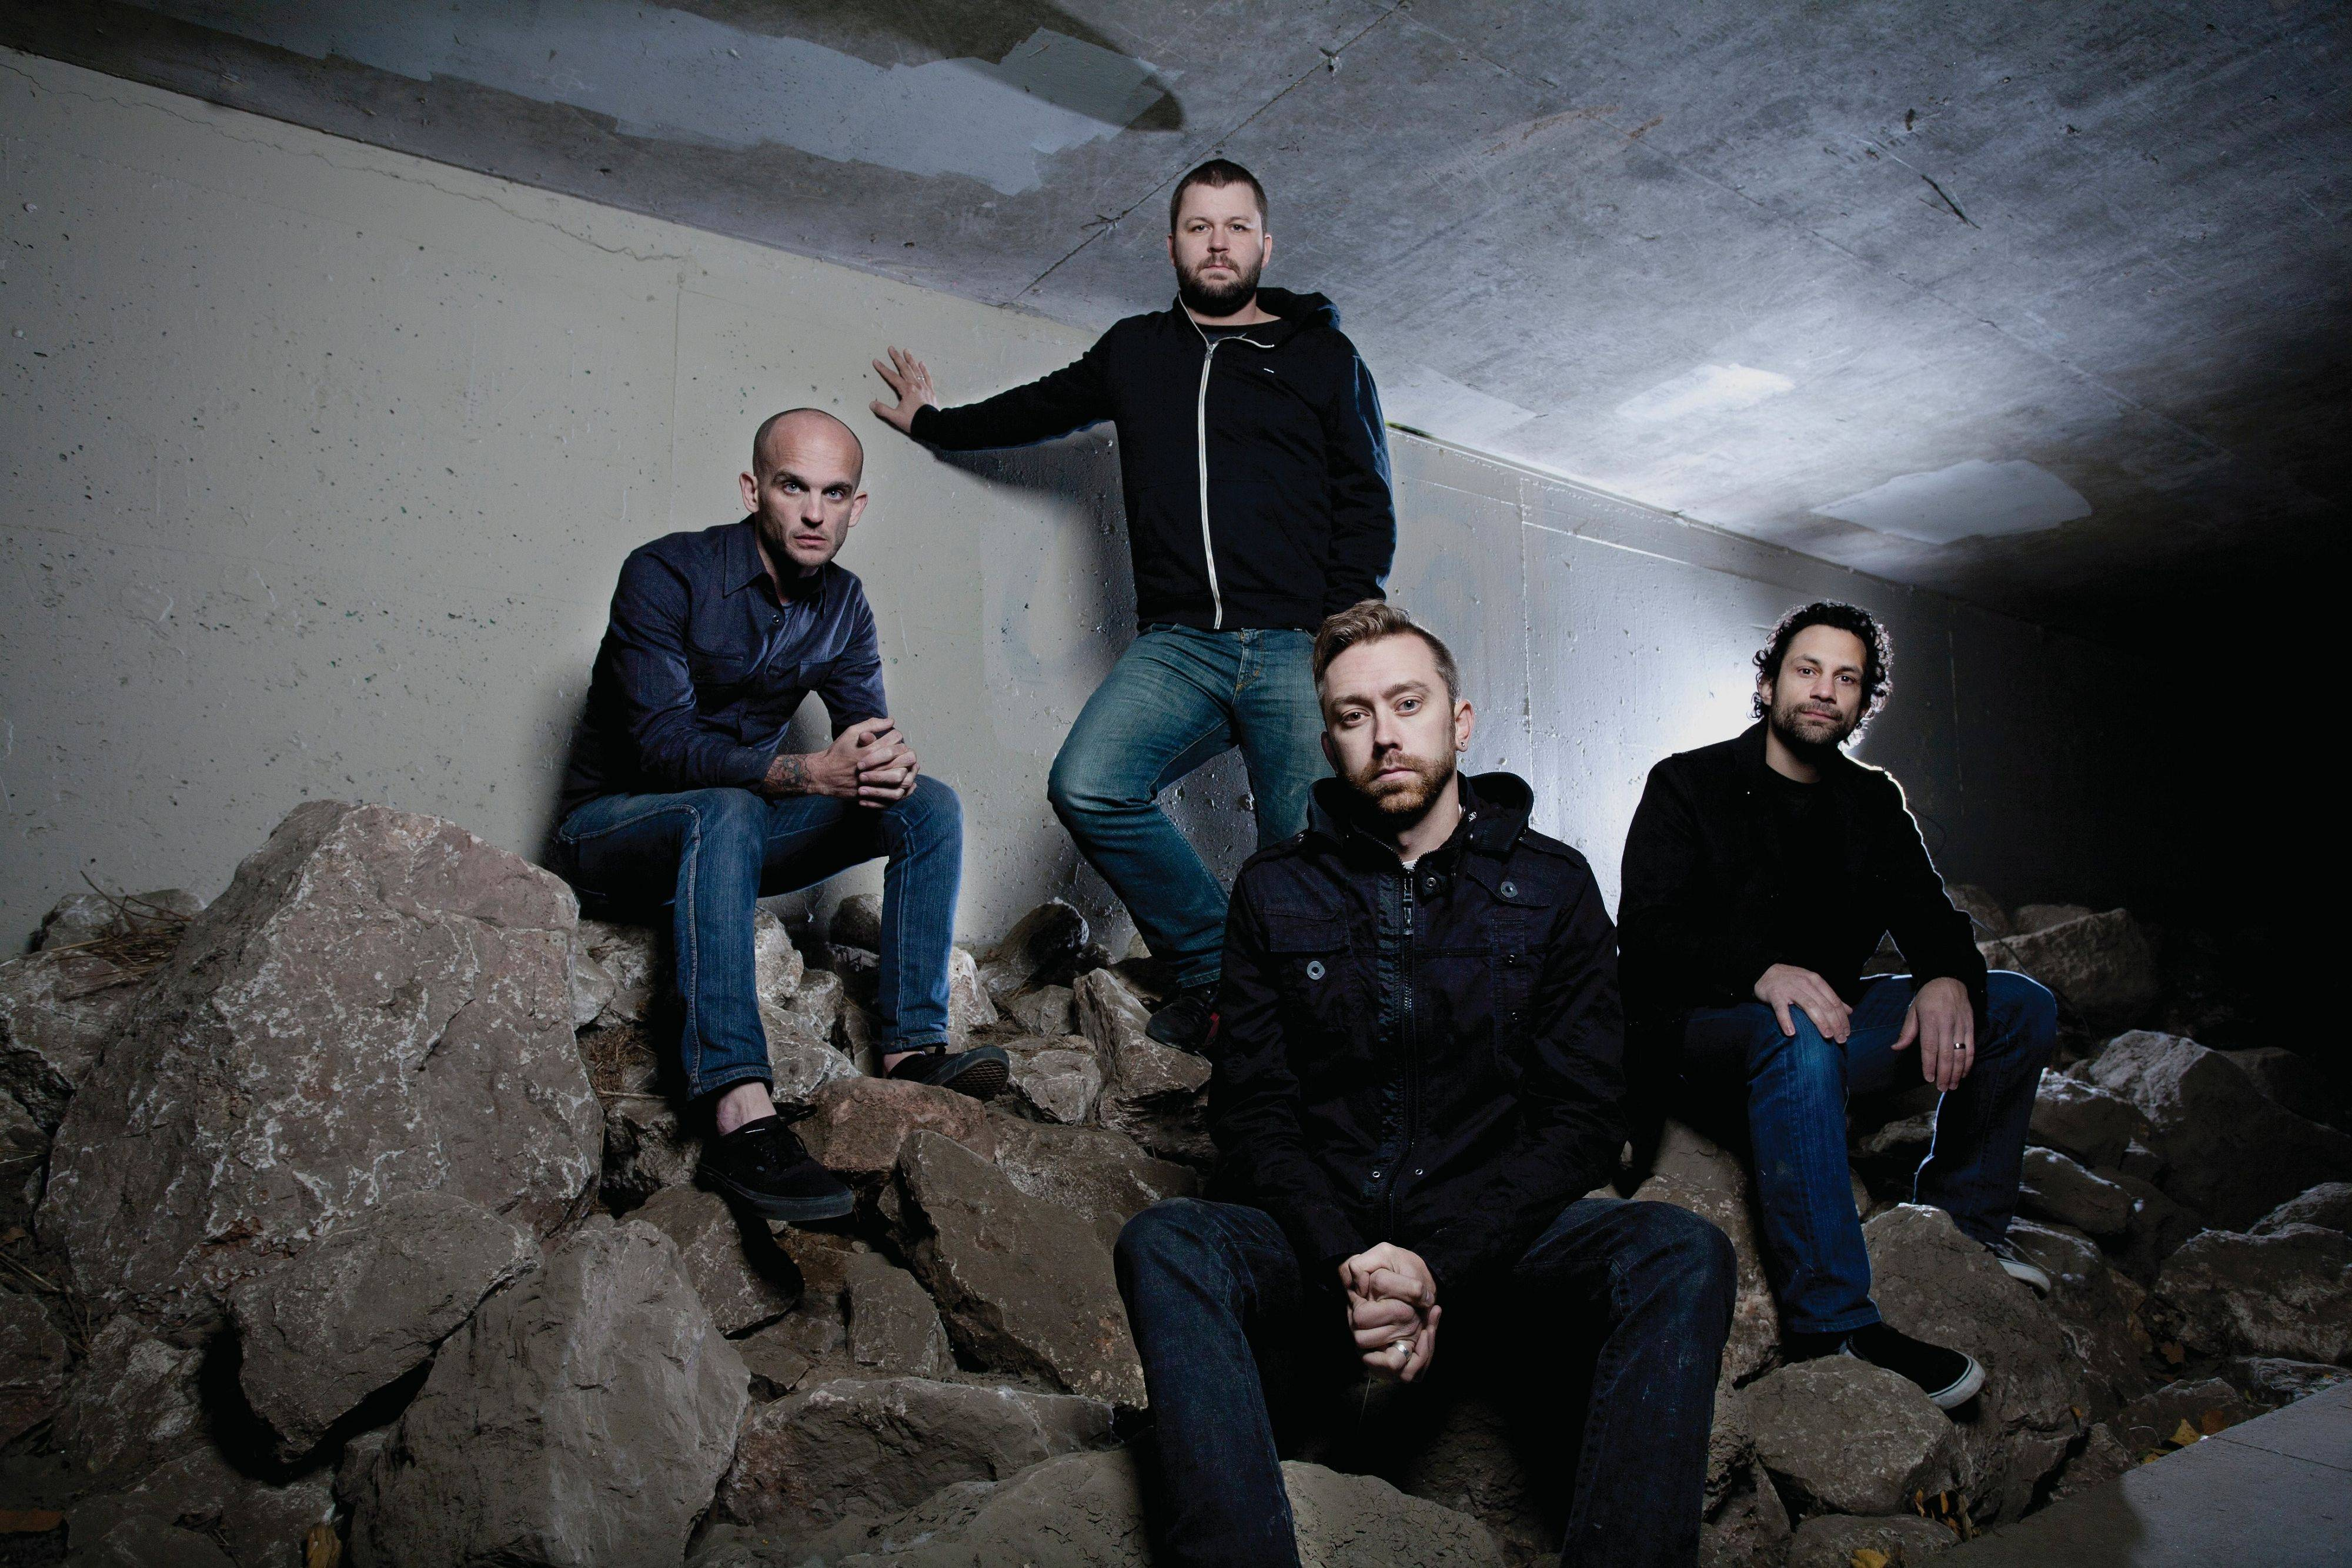 The popular punk band Rise Against is, from left to right, guitarist Zach Blair of Austin, Texas, drummer Brandon Barnes of Norridge, lead vocalist Tim McIlrath of Arlington Heights, and bass guitarist Joe Principe of Downers Grove.